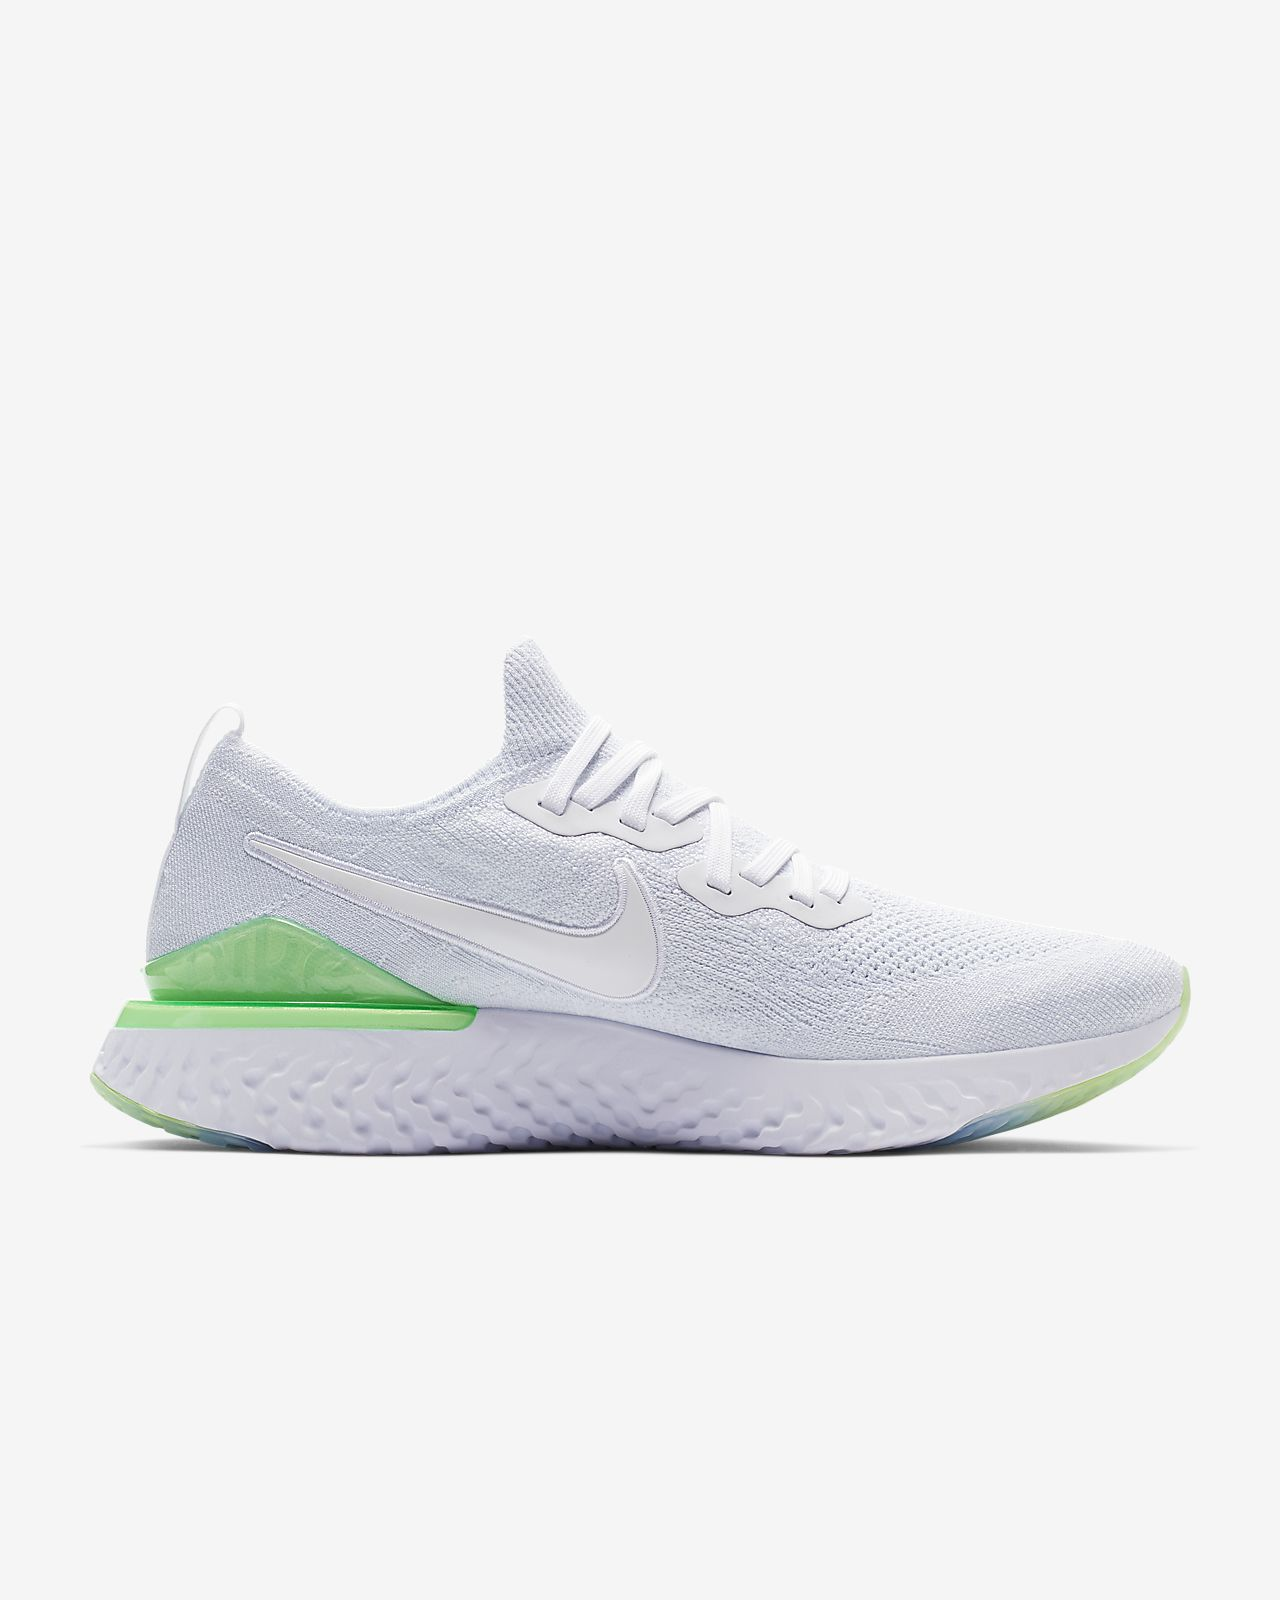 7070228bf26 Nike Epic React Flyknit 2 Men s Running Shoe. Nike.com NO